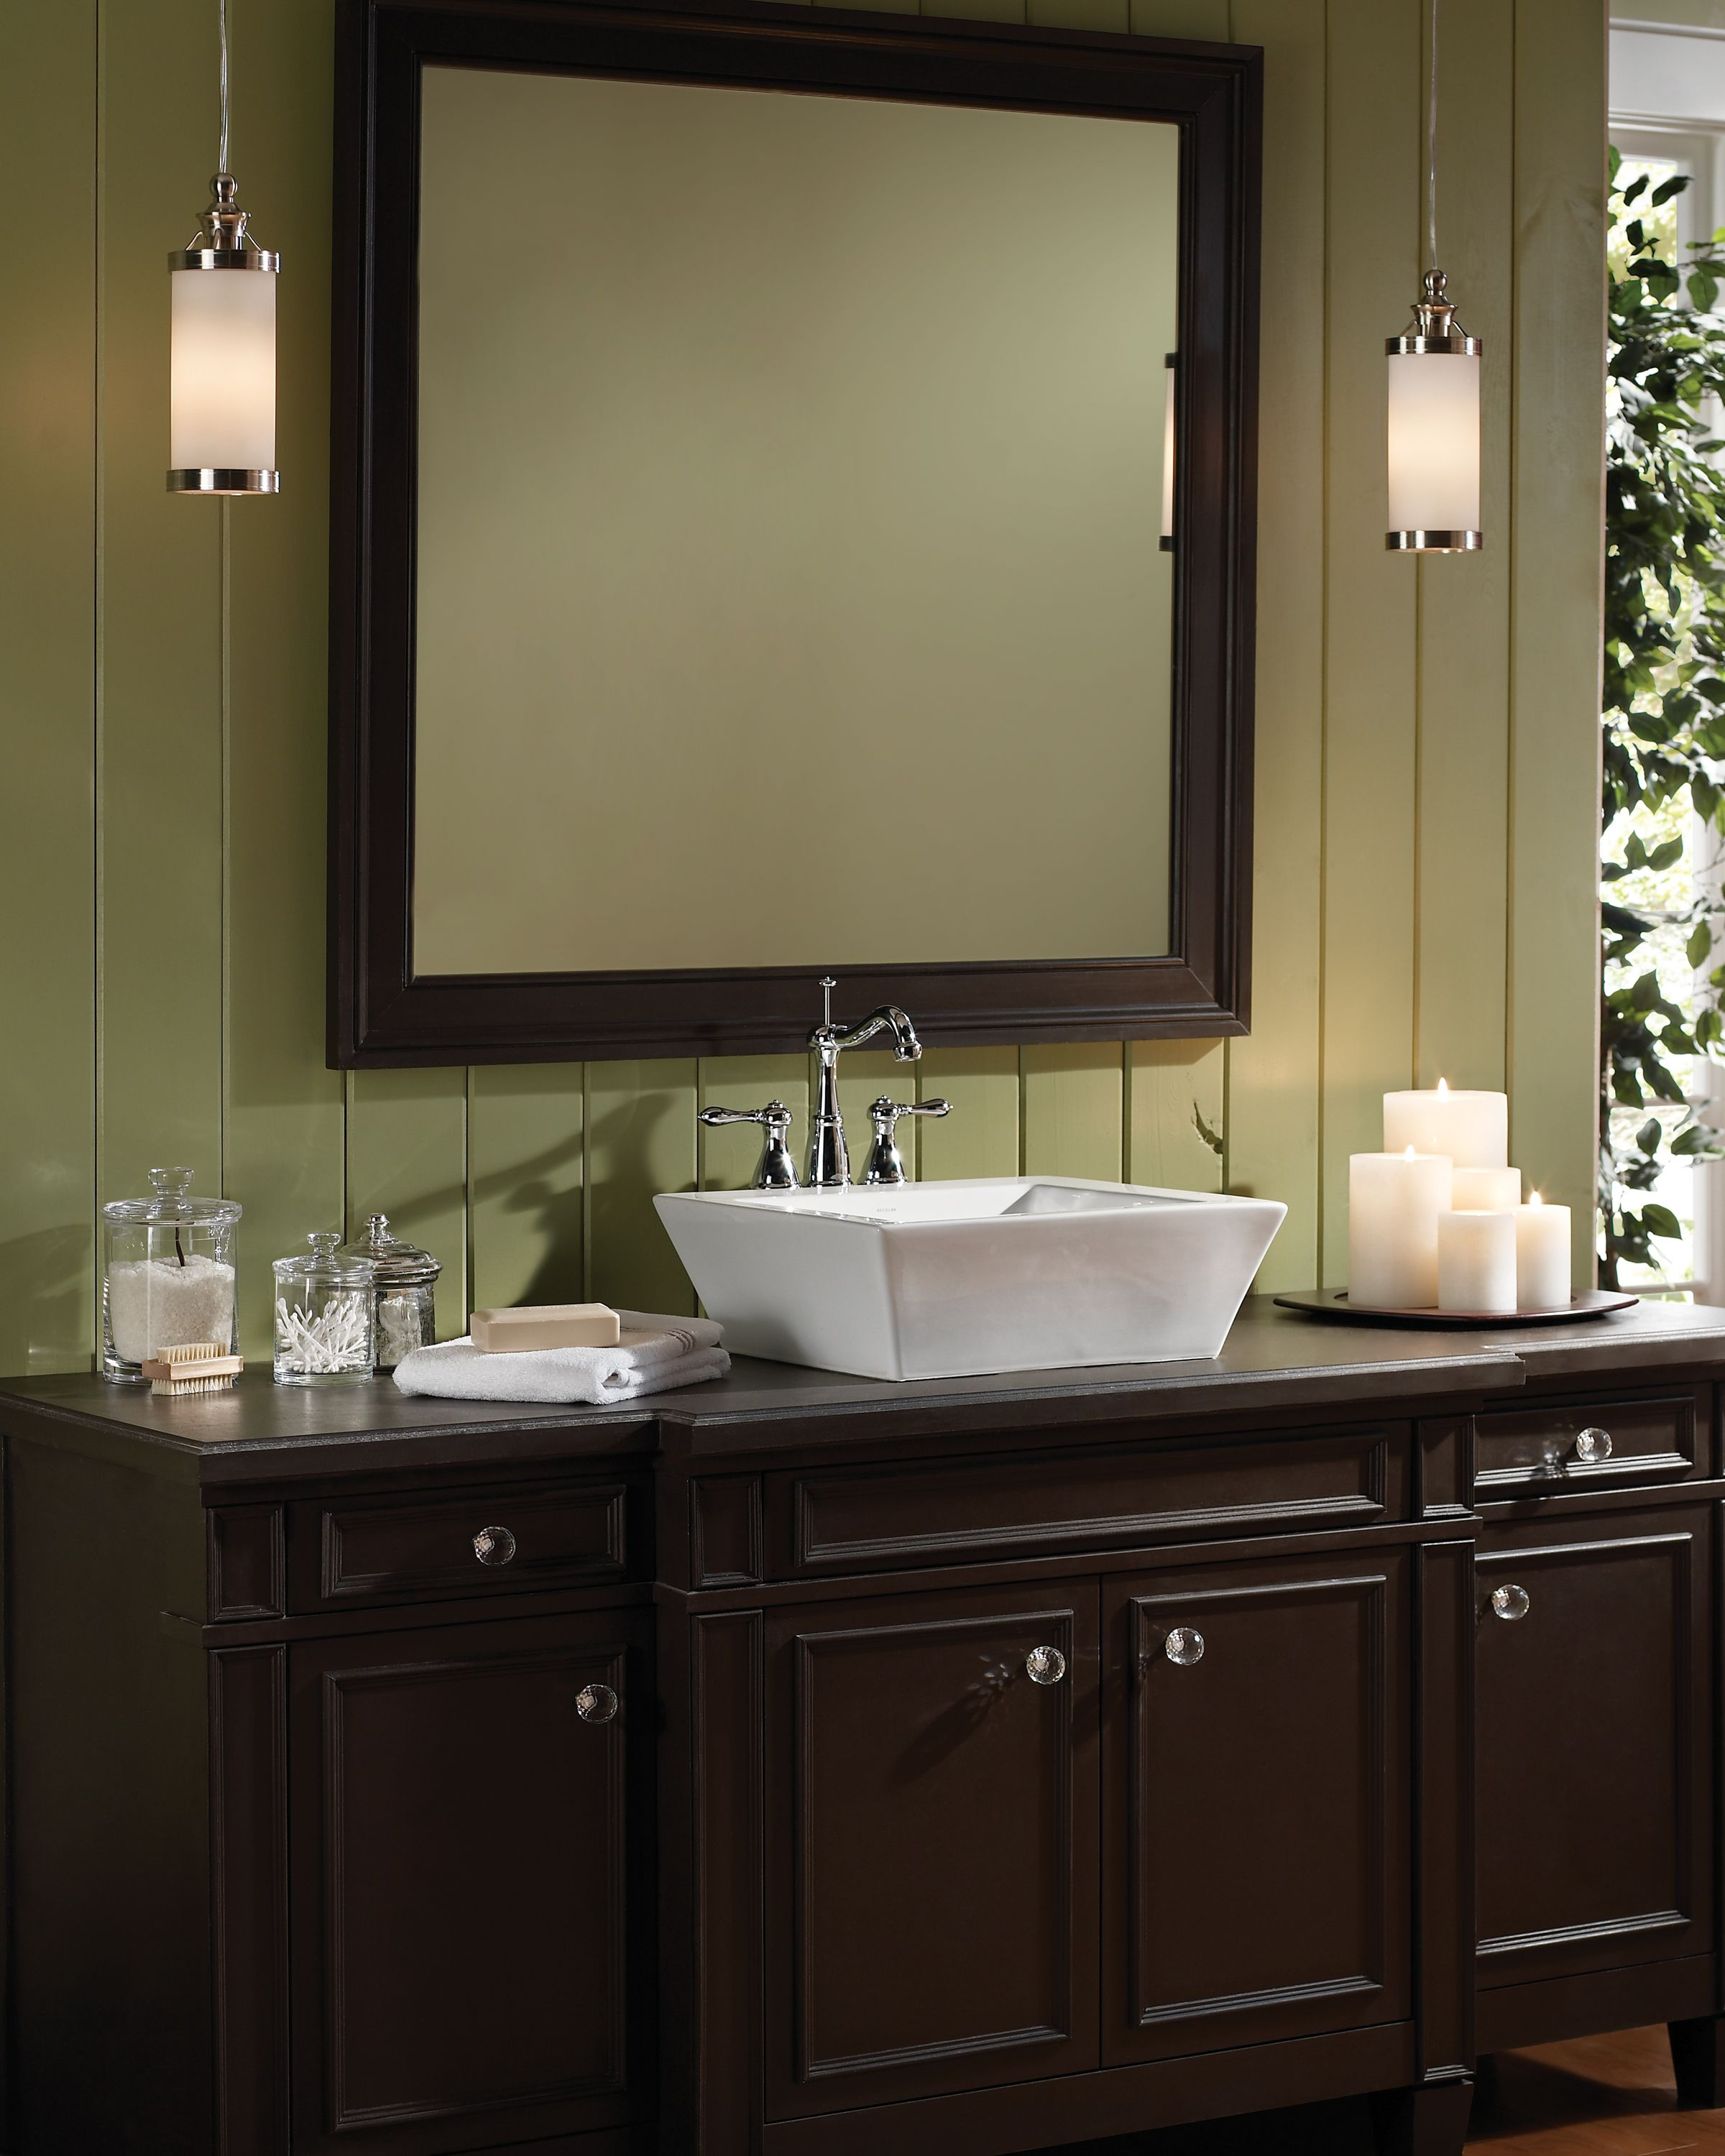 Bridgeport pendant by tech lighting in bathroom - Images of bathroom vanity lighting ...